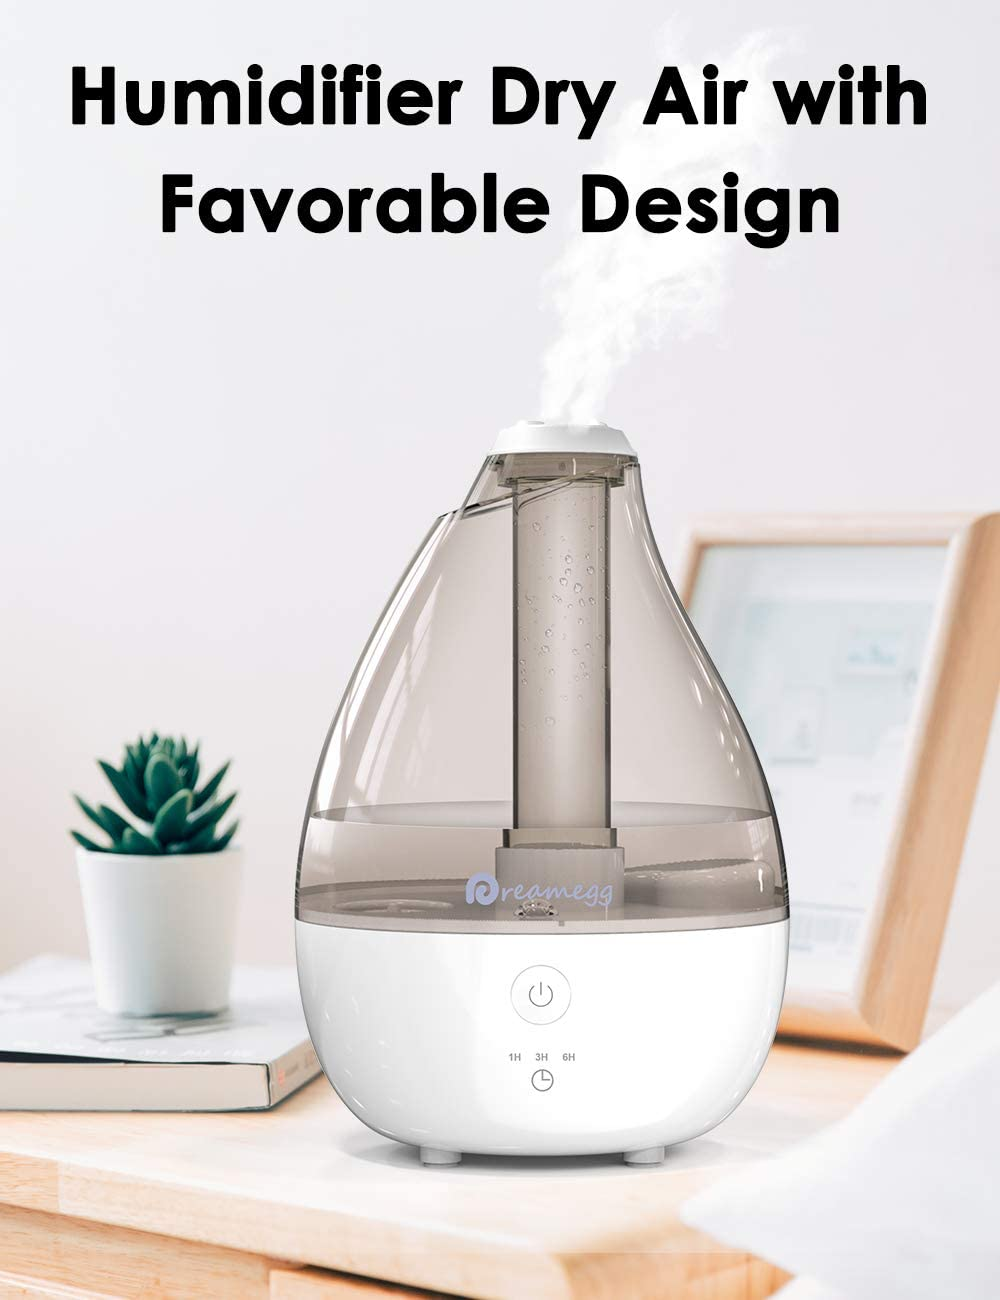 Cool Mist Humidifier by Dreamegg